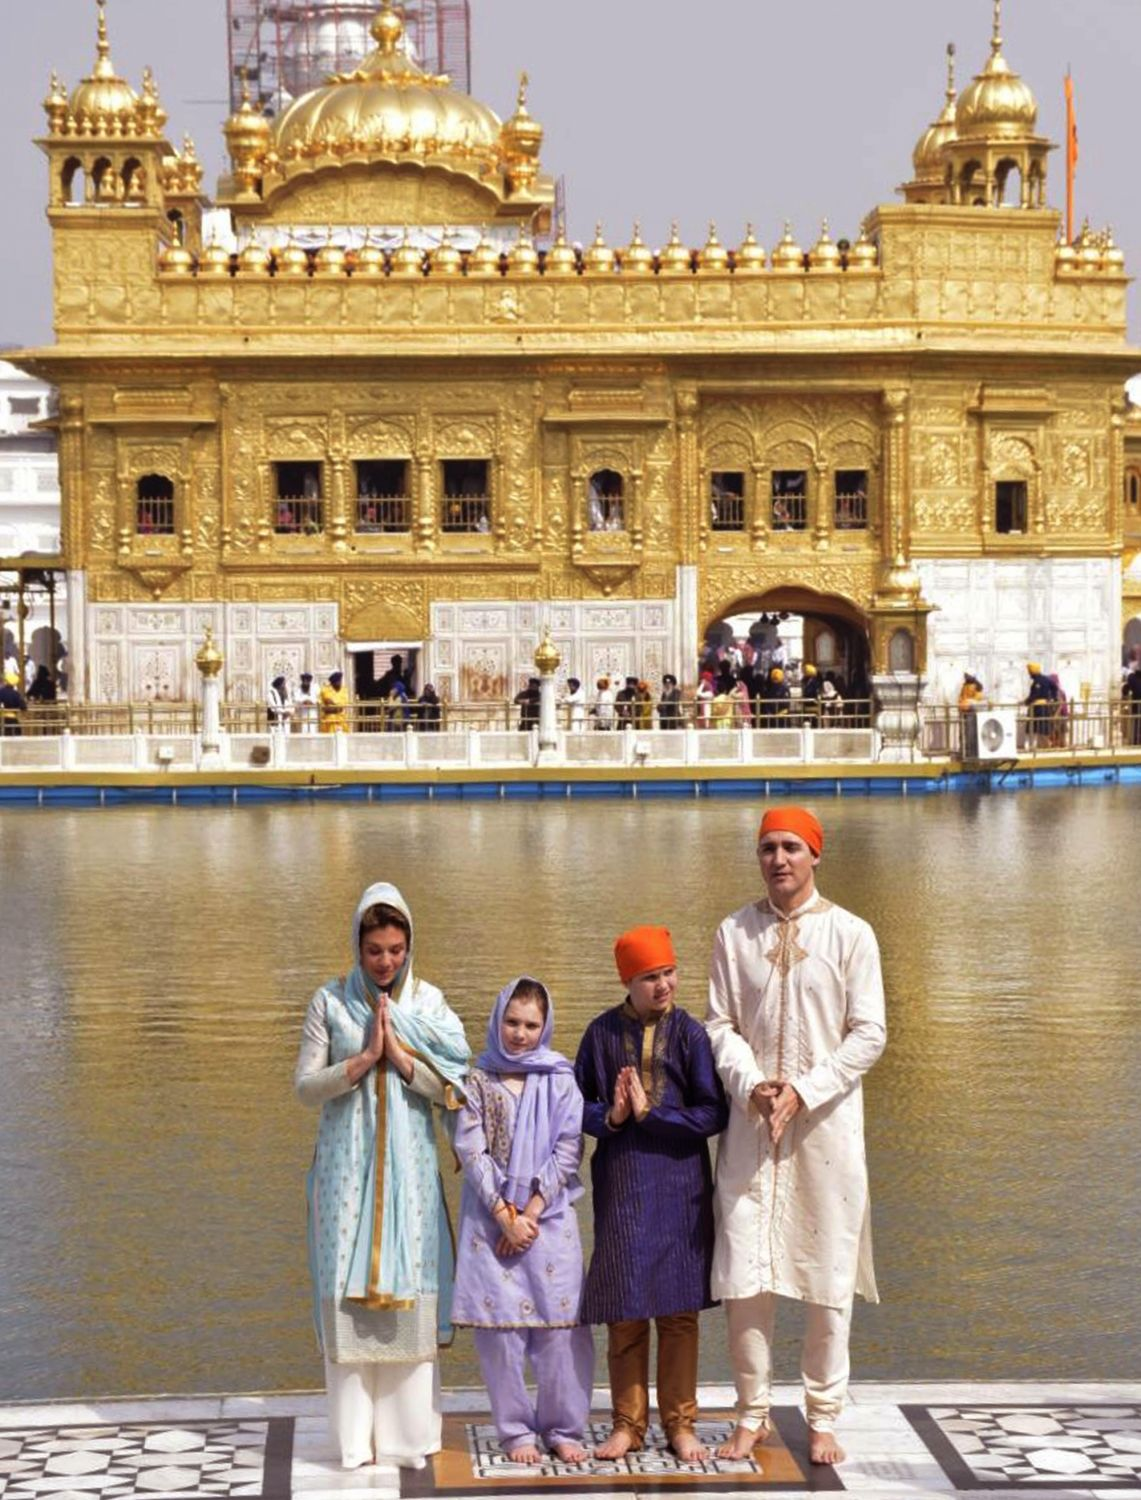 trudeaus offer prayers at golden temple, perform 'sewa' | diplomacy